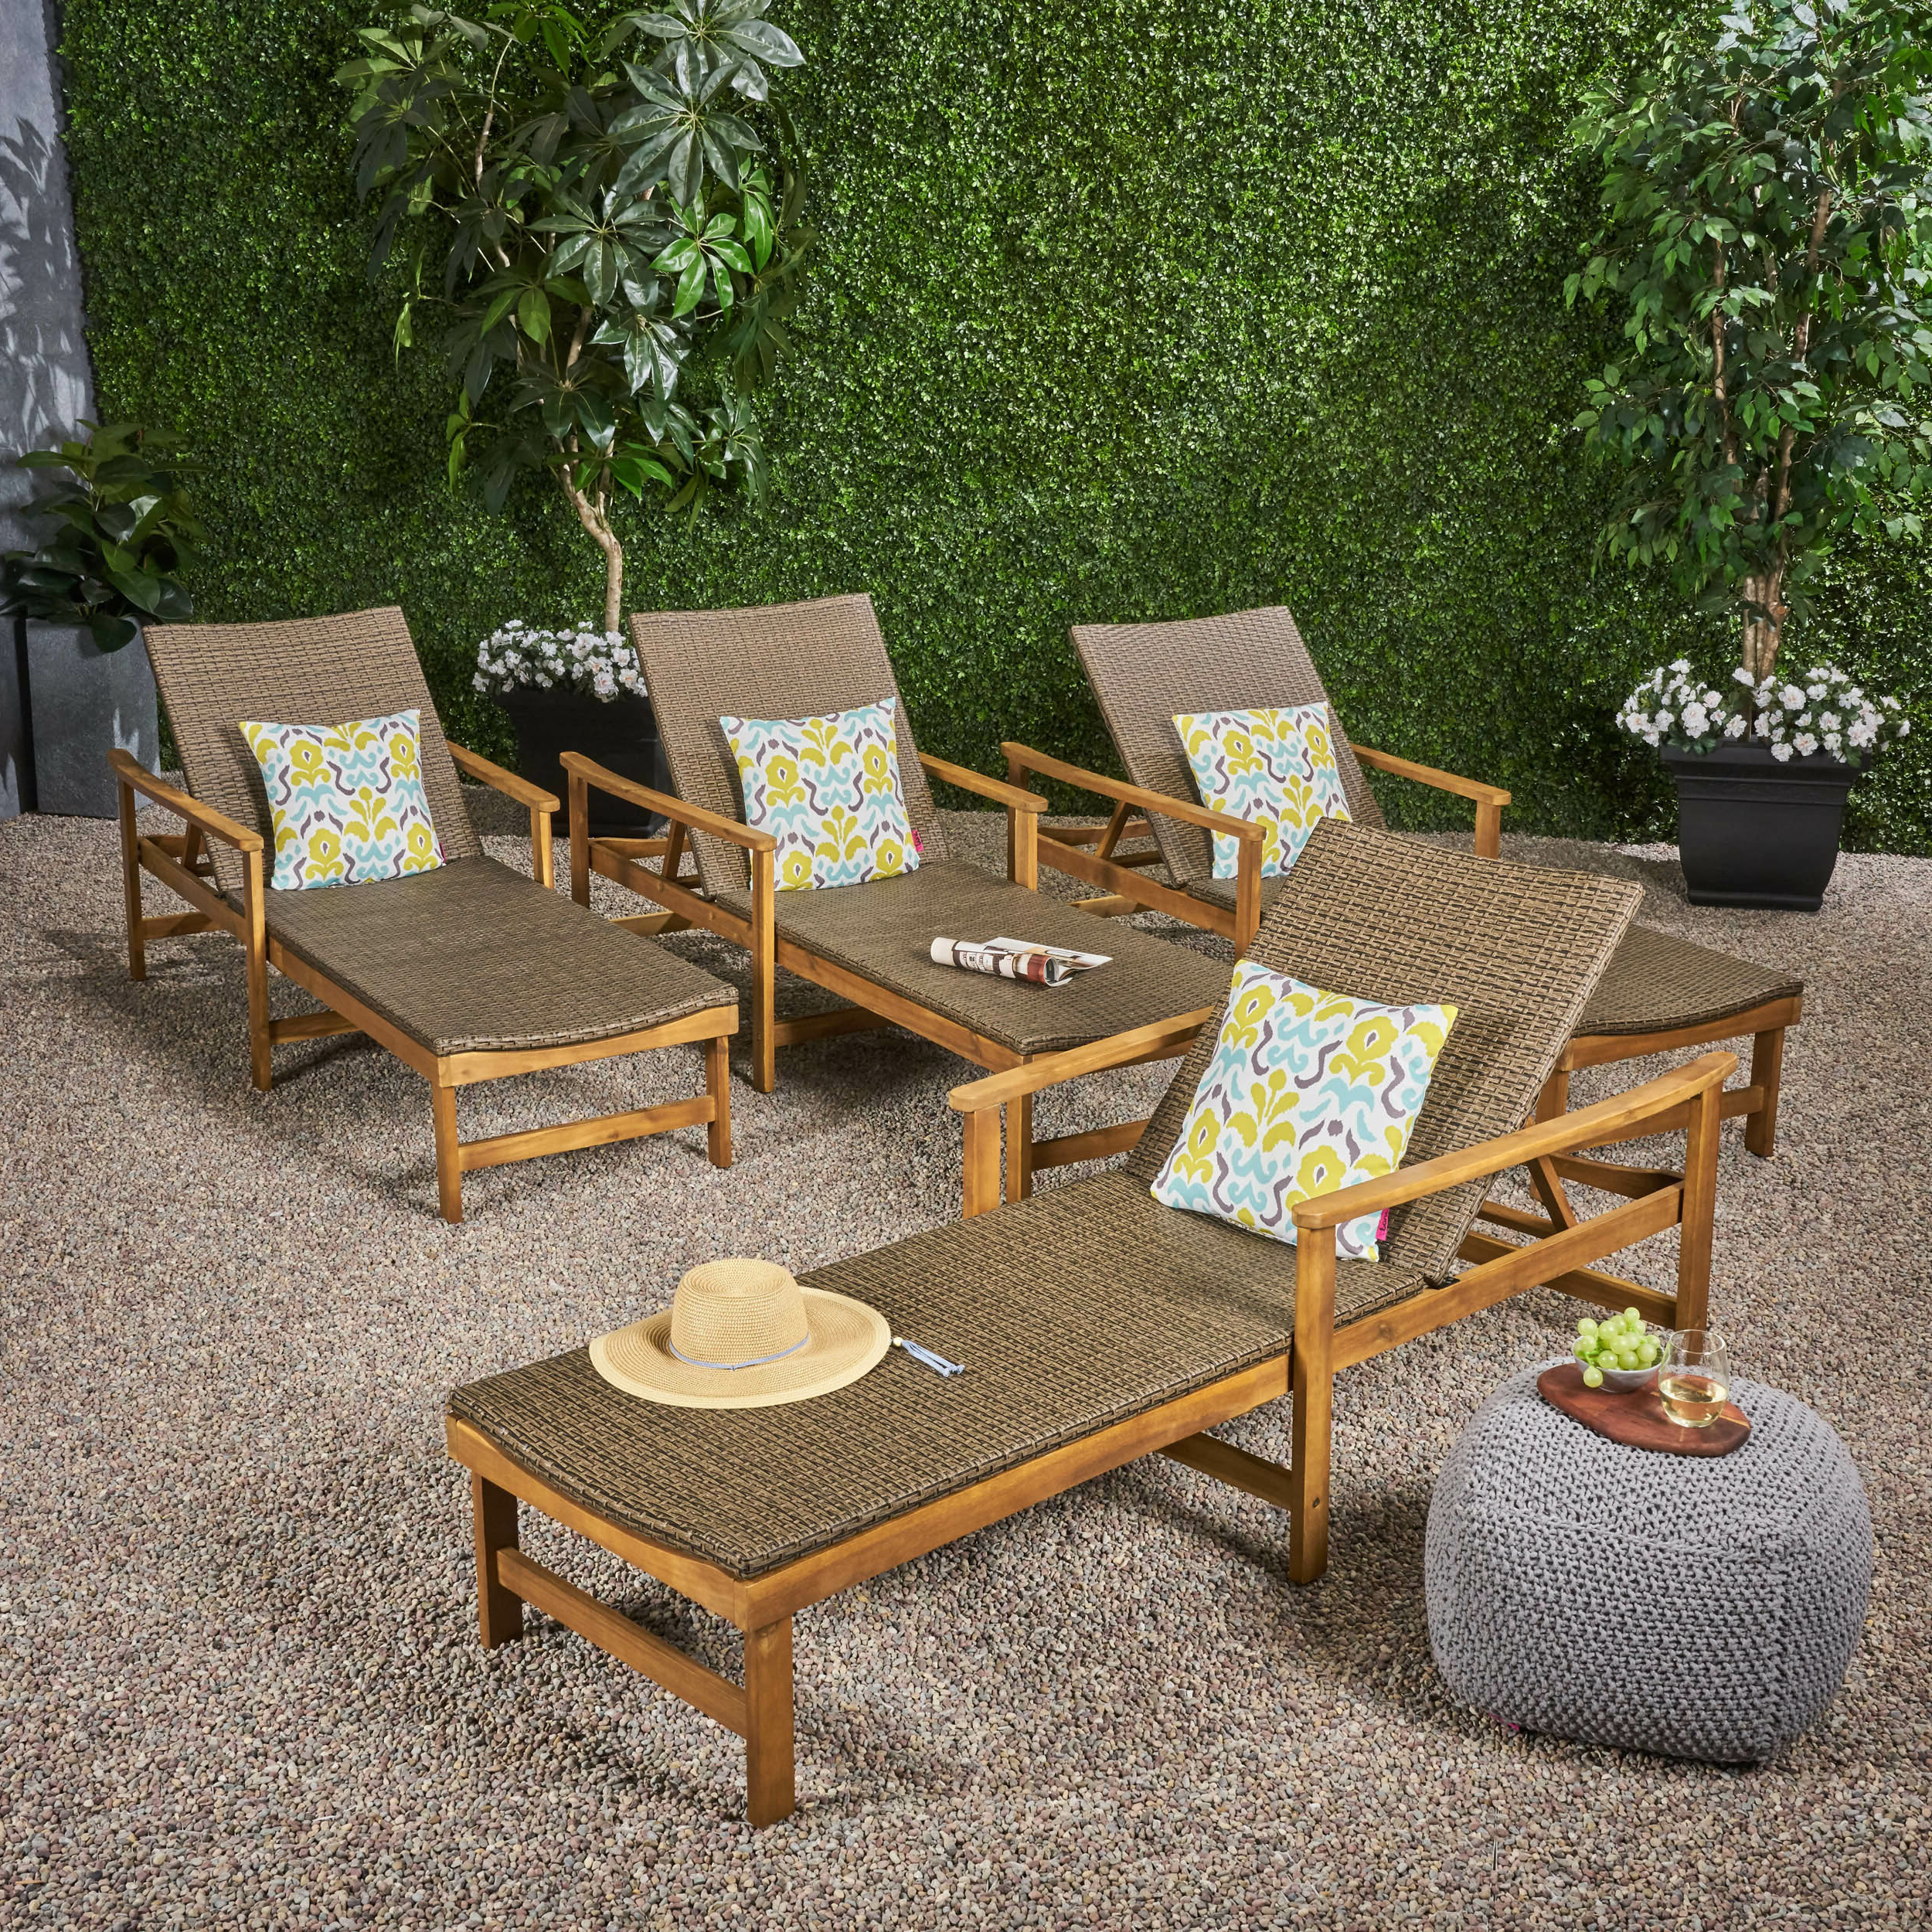 Newest Outdoor Rustic Acacia Wood Chaise Lounges With Wicker Seat With Regard To Bellbrook Reclining Chaise Lounge (View 12 of 25)